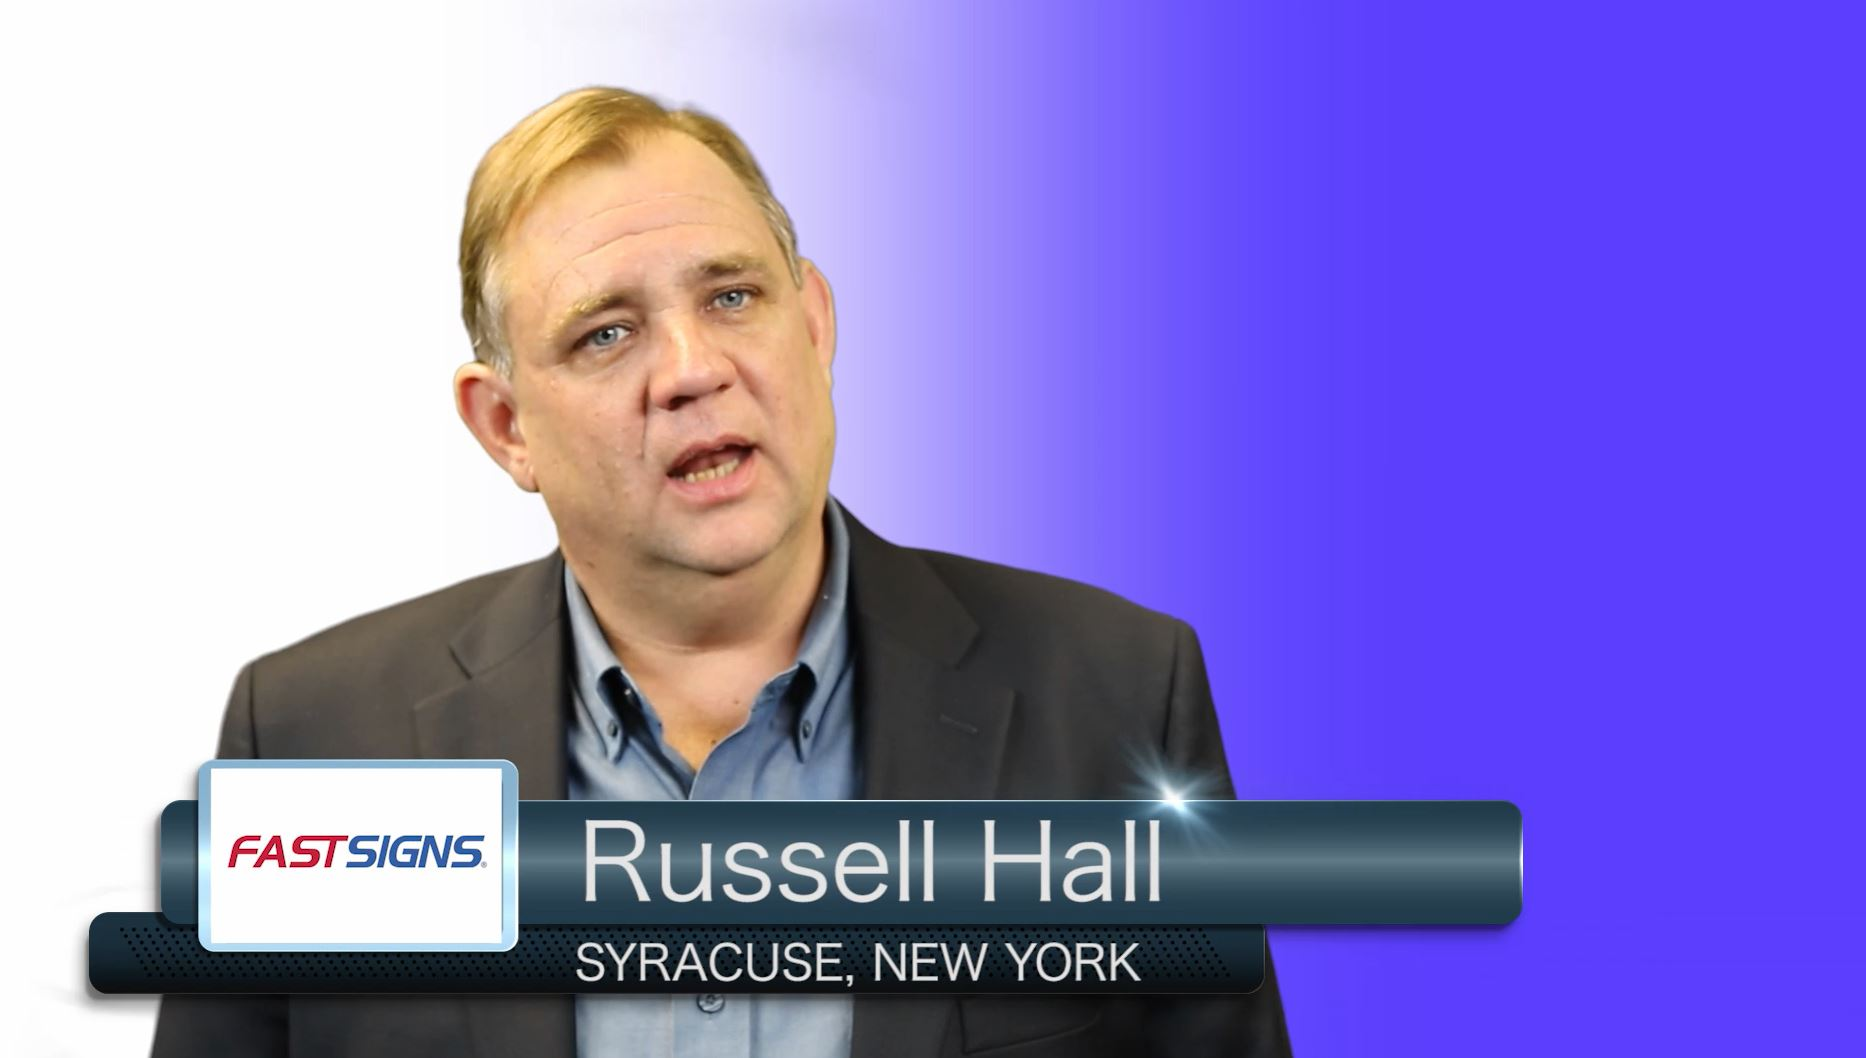 Franchise Owners - Russell Hall